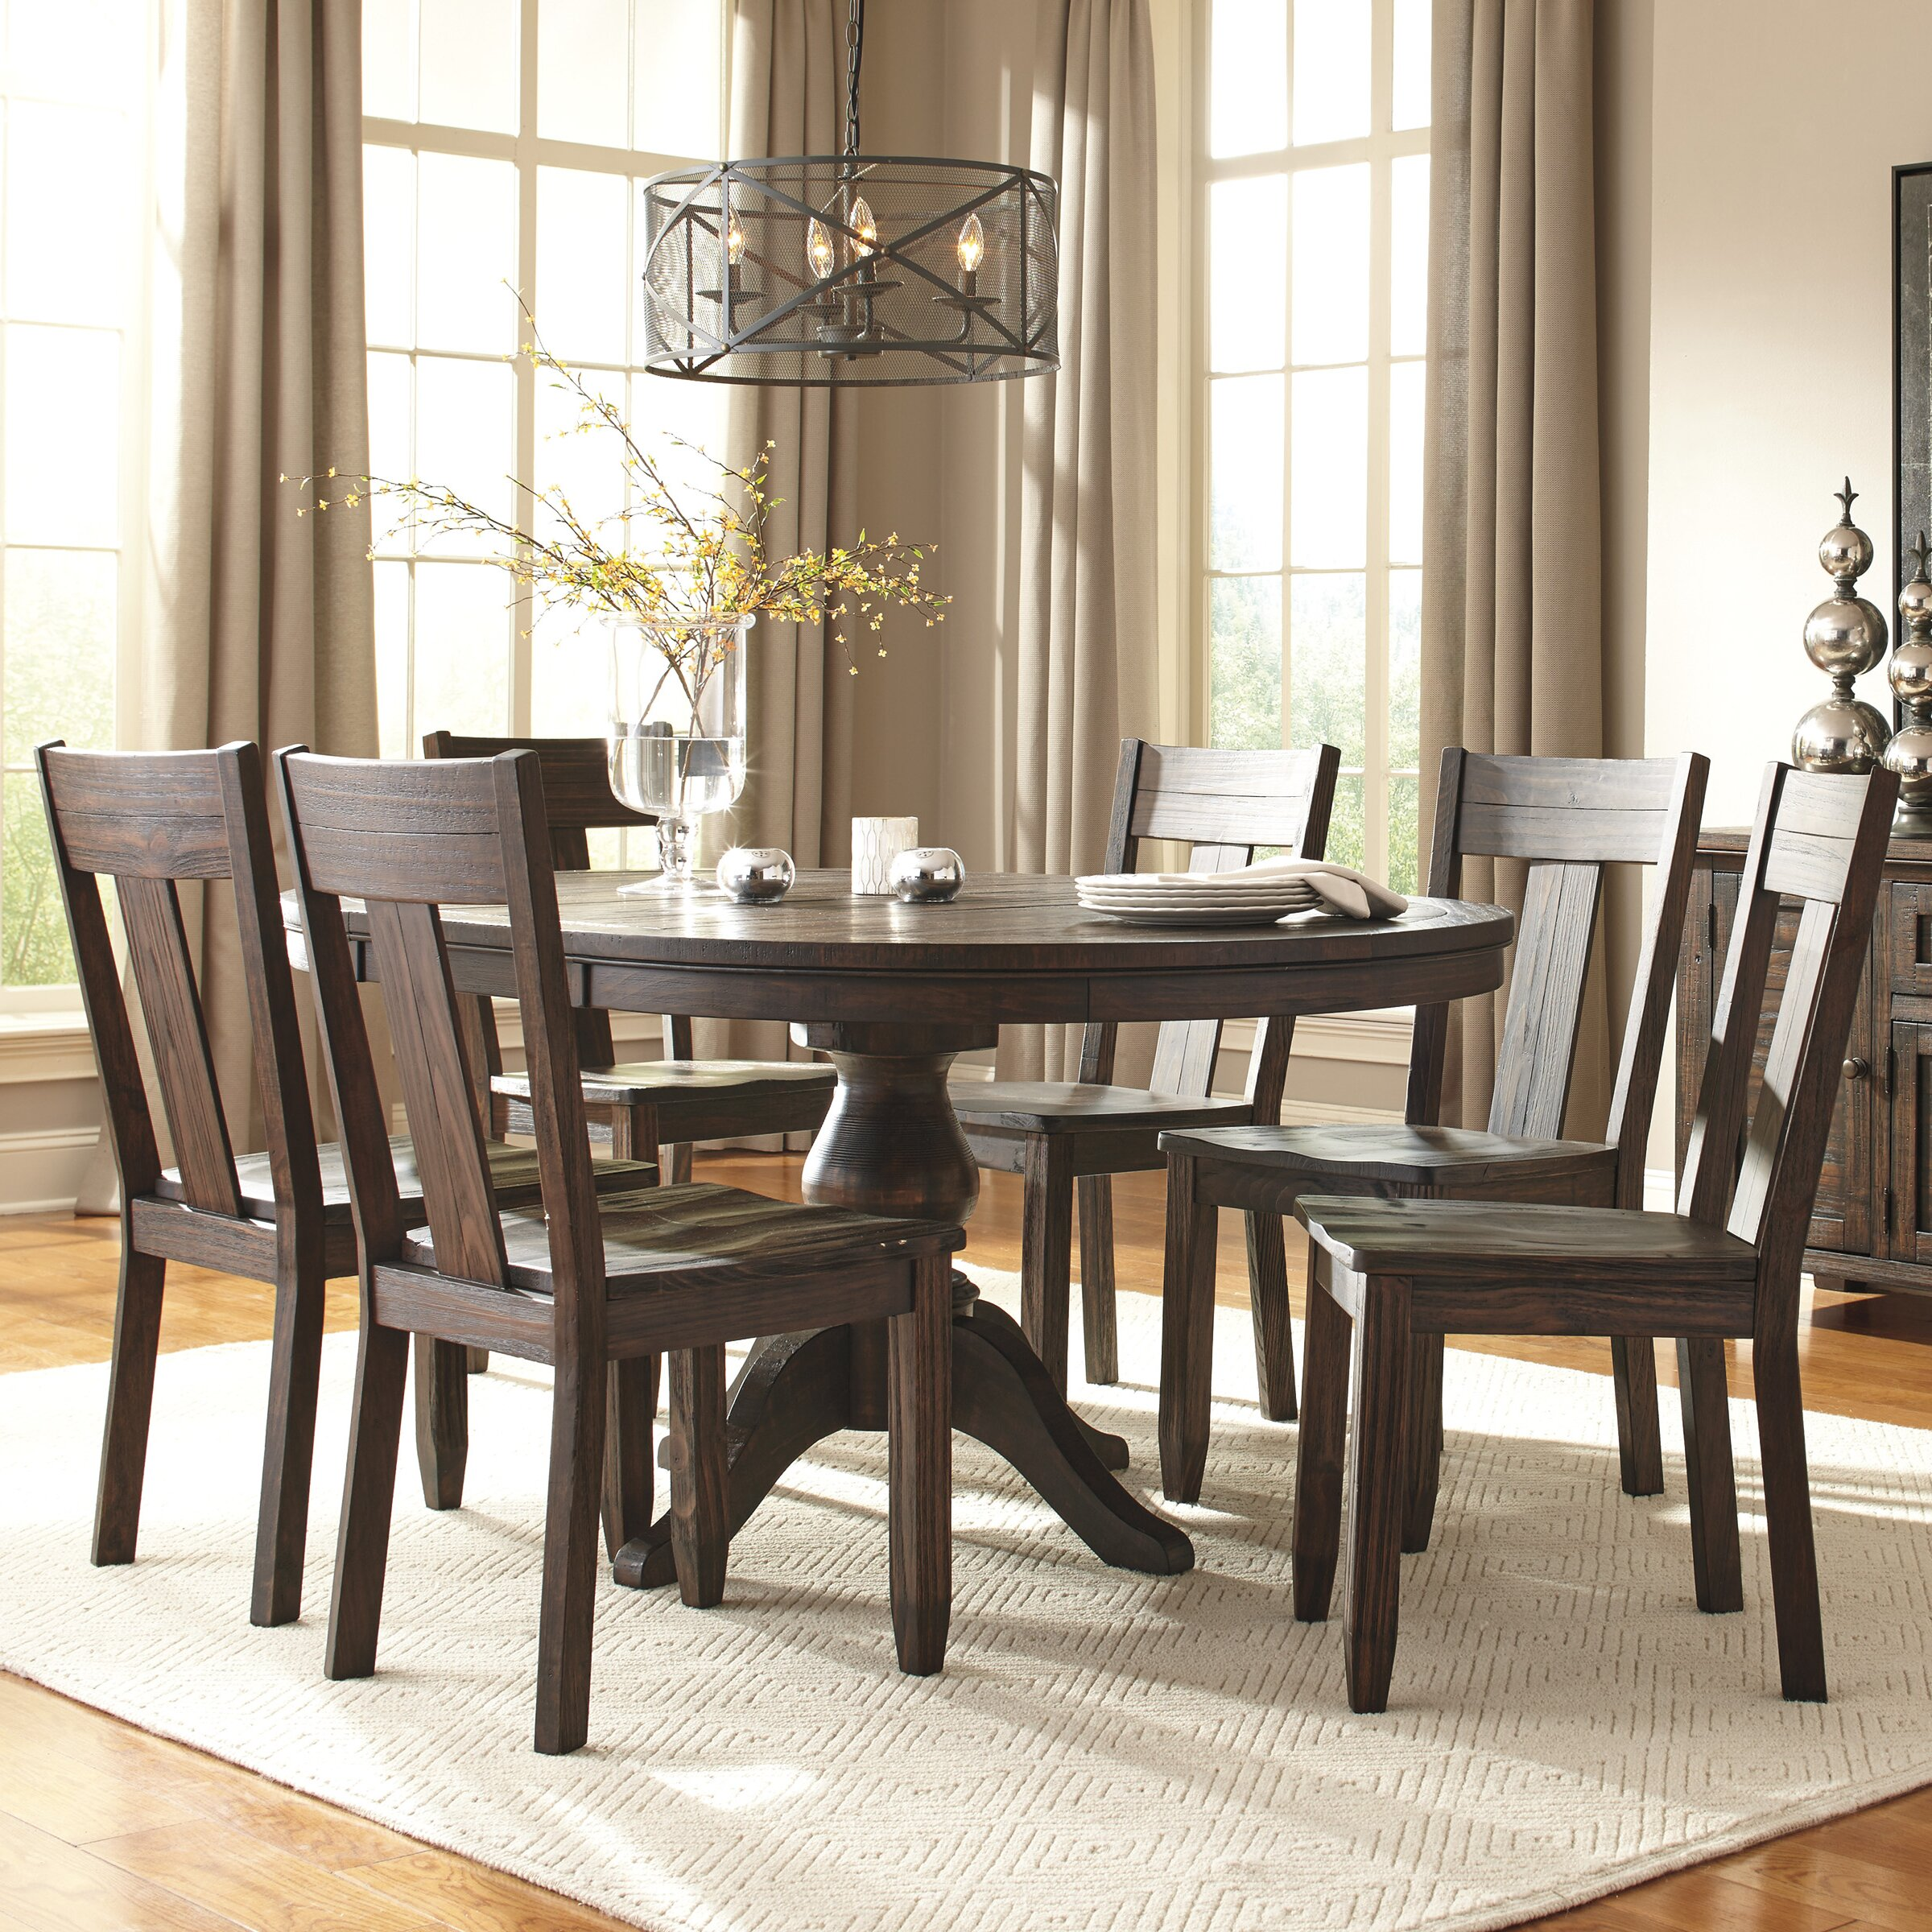 Signature design by ashley 7 piece dining set reviews for Ashley furniture dining room sets design